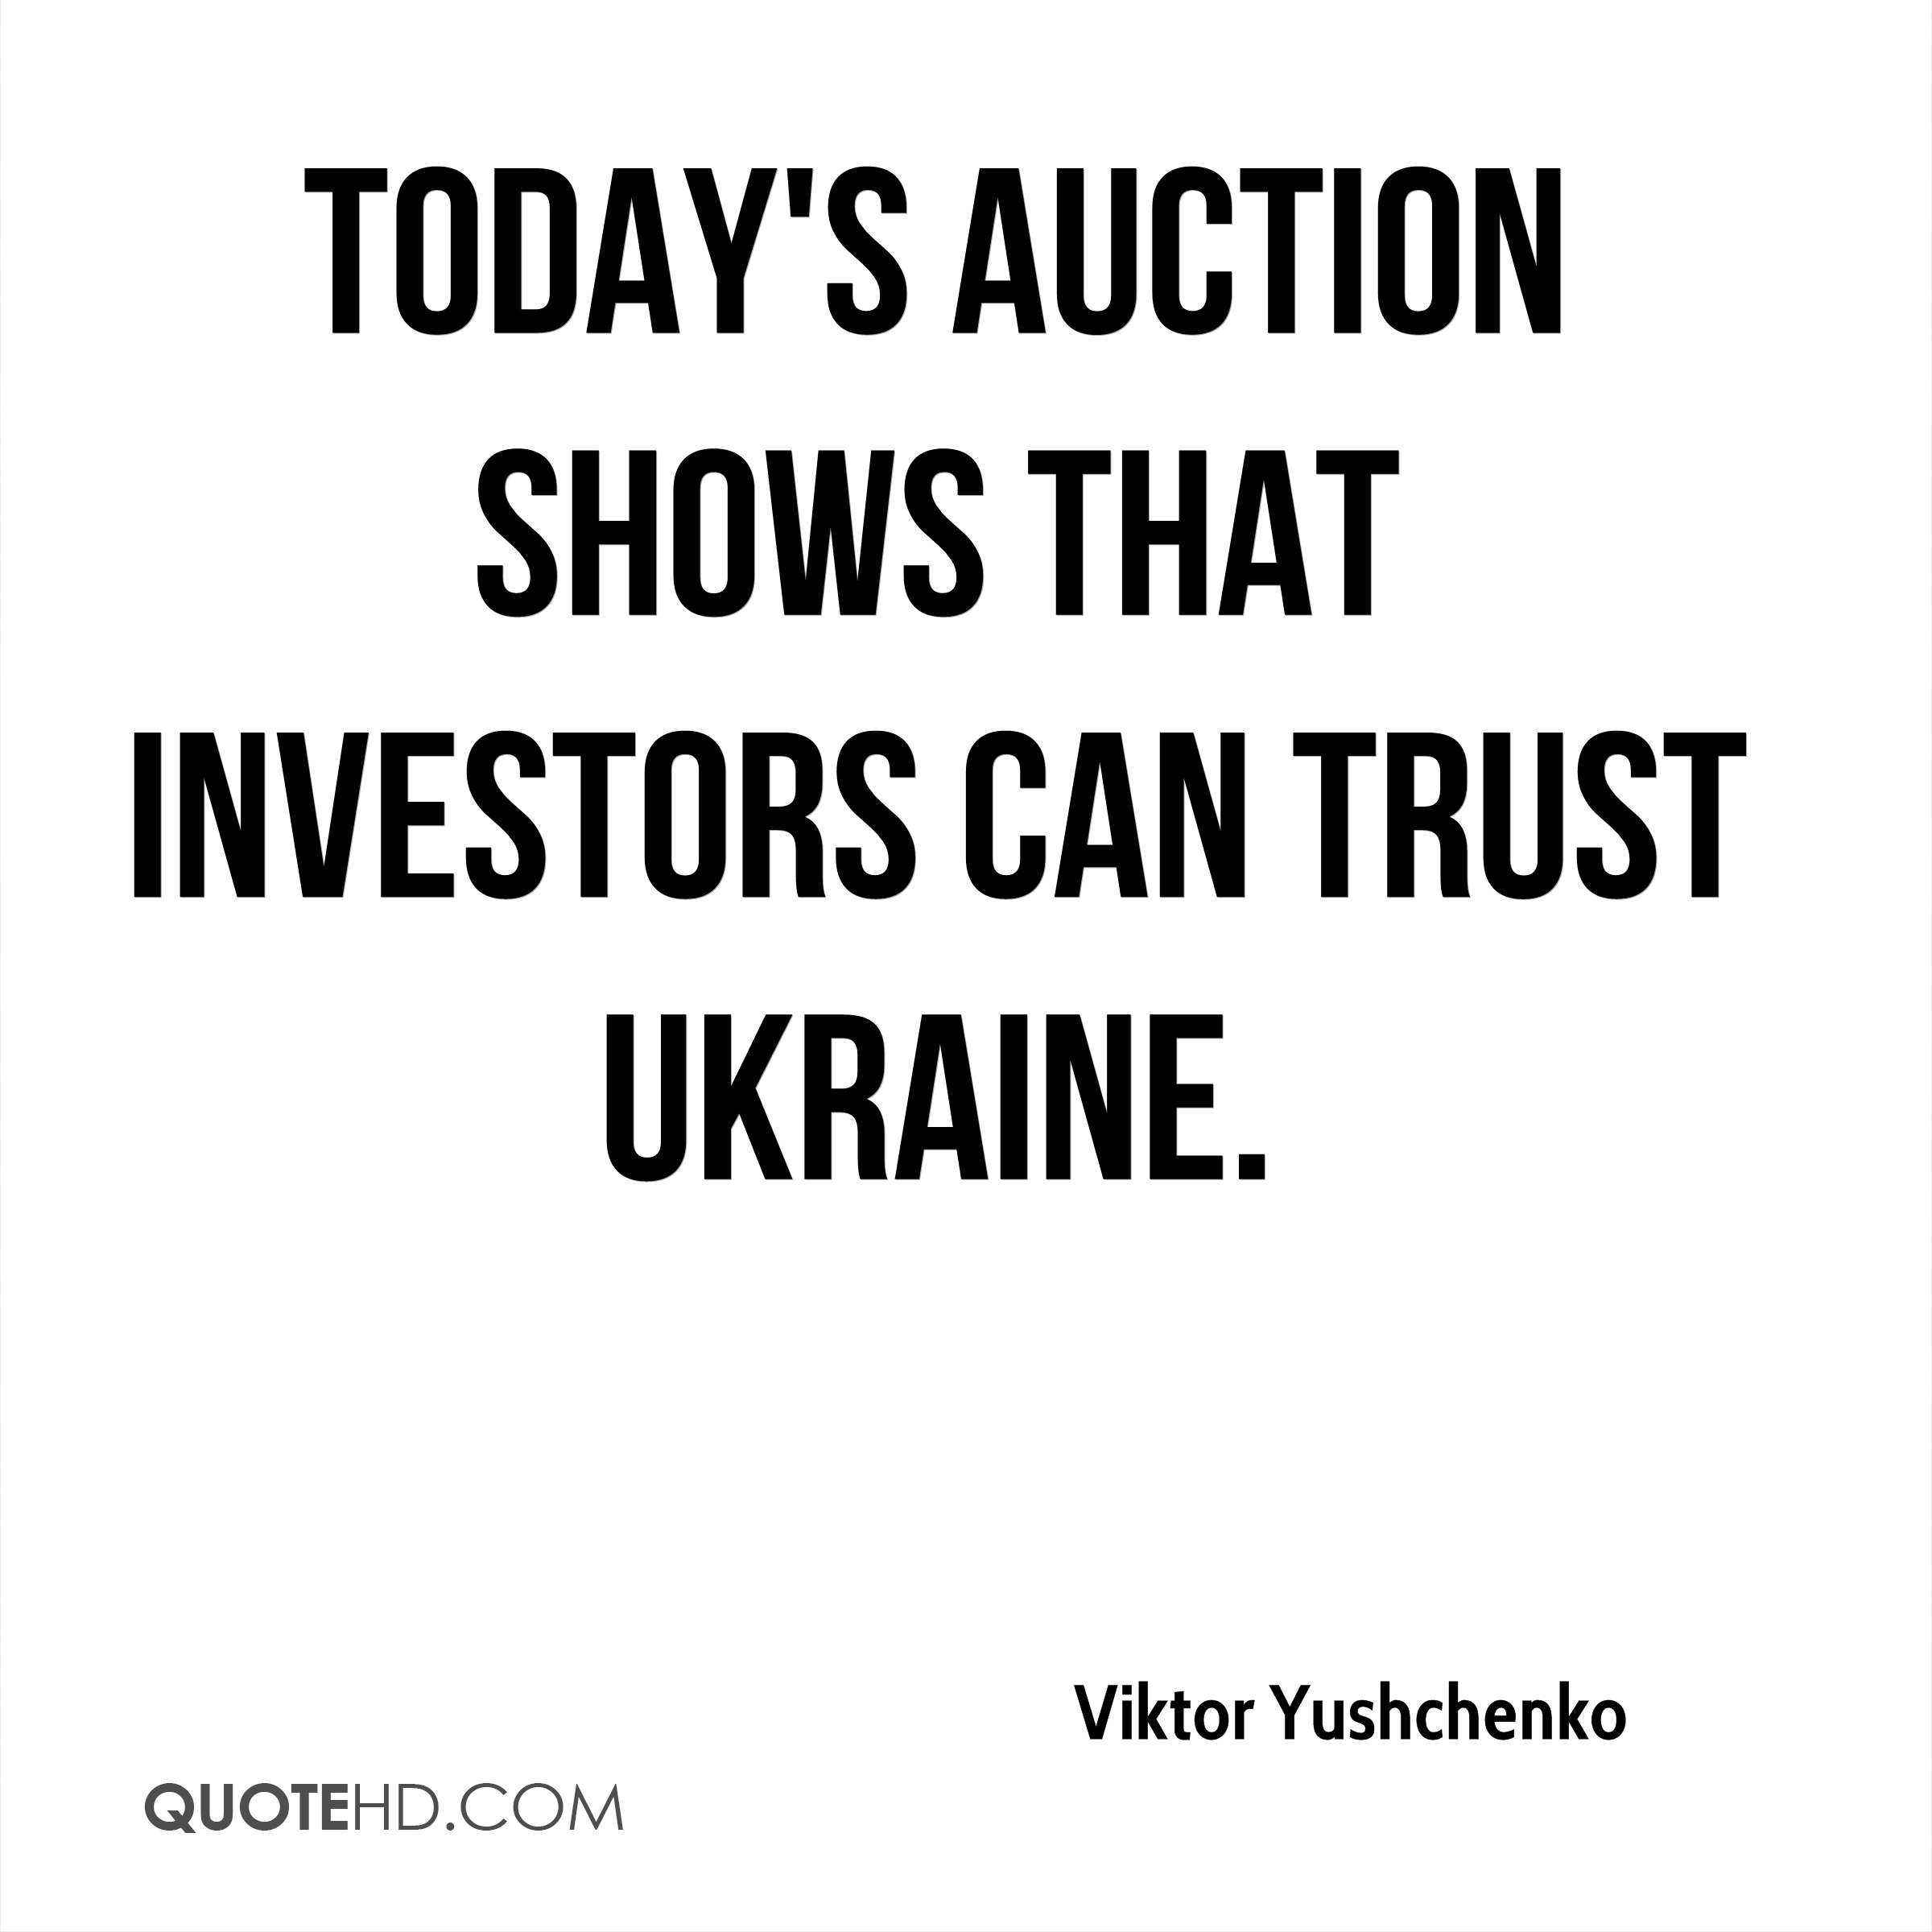 Today's auction shows that investors can trust Ukraine.